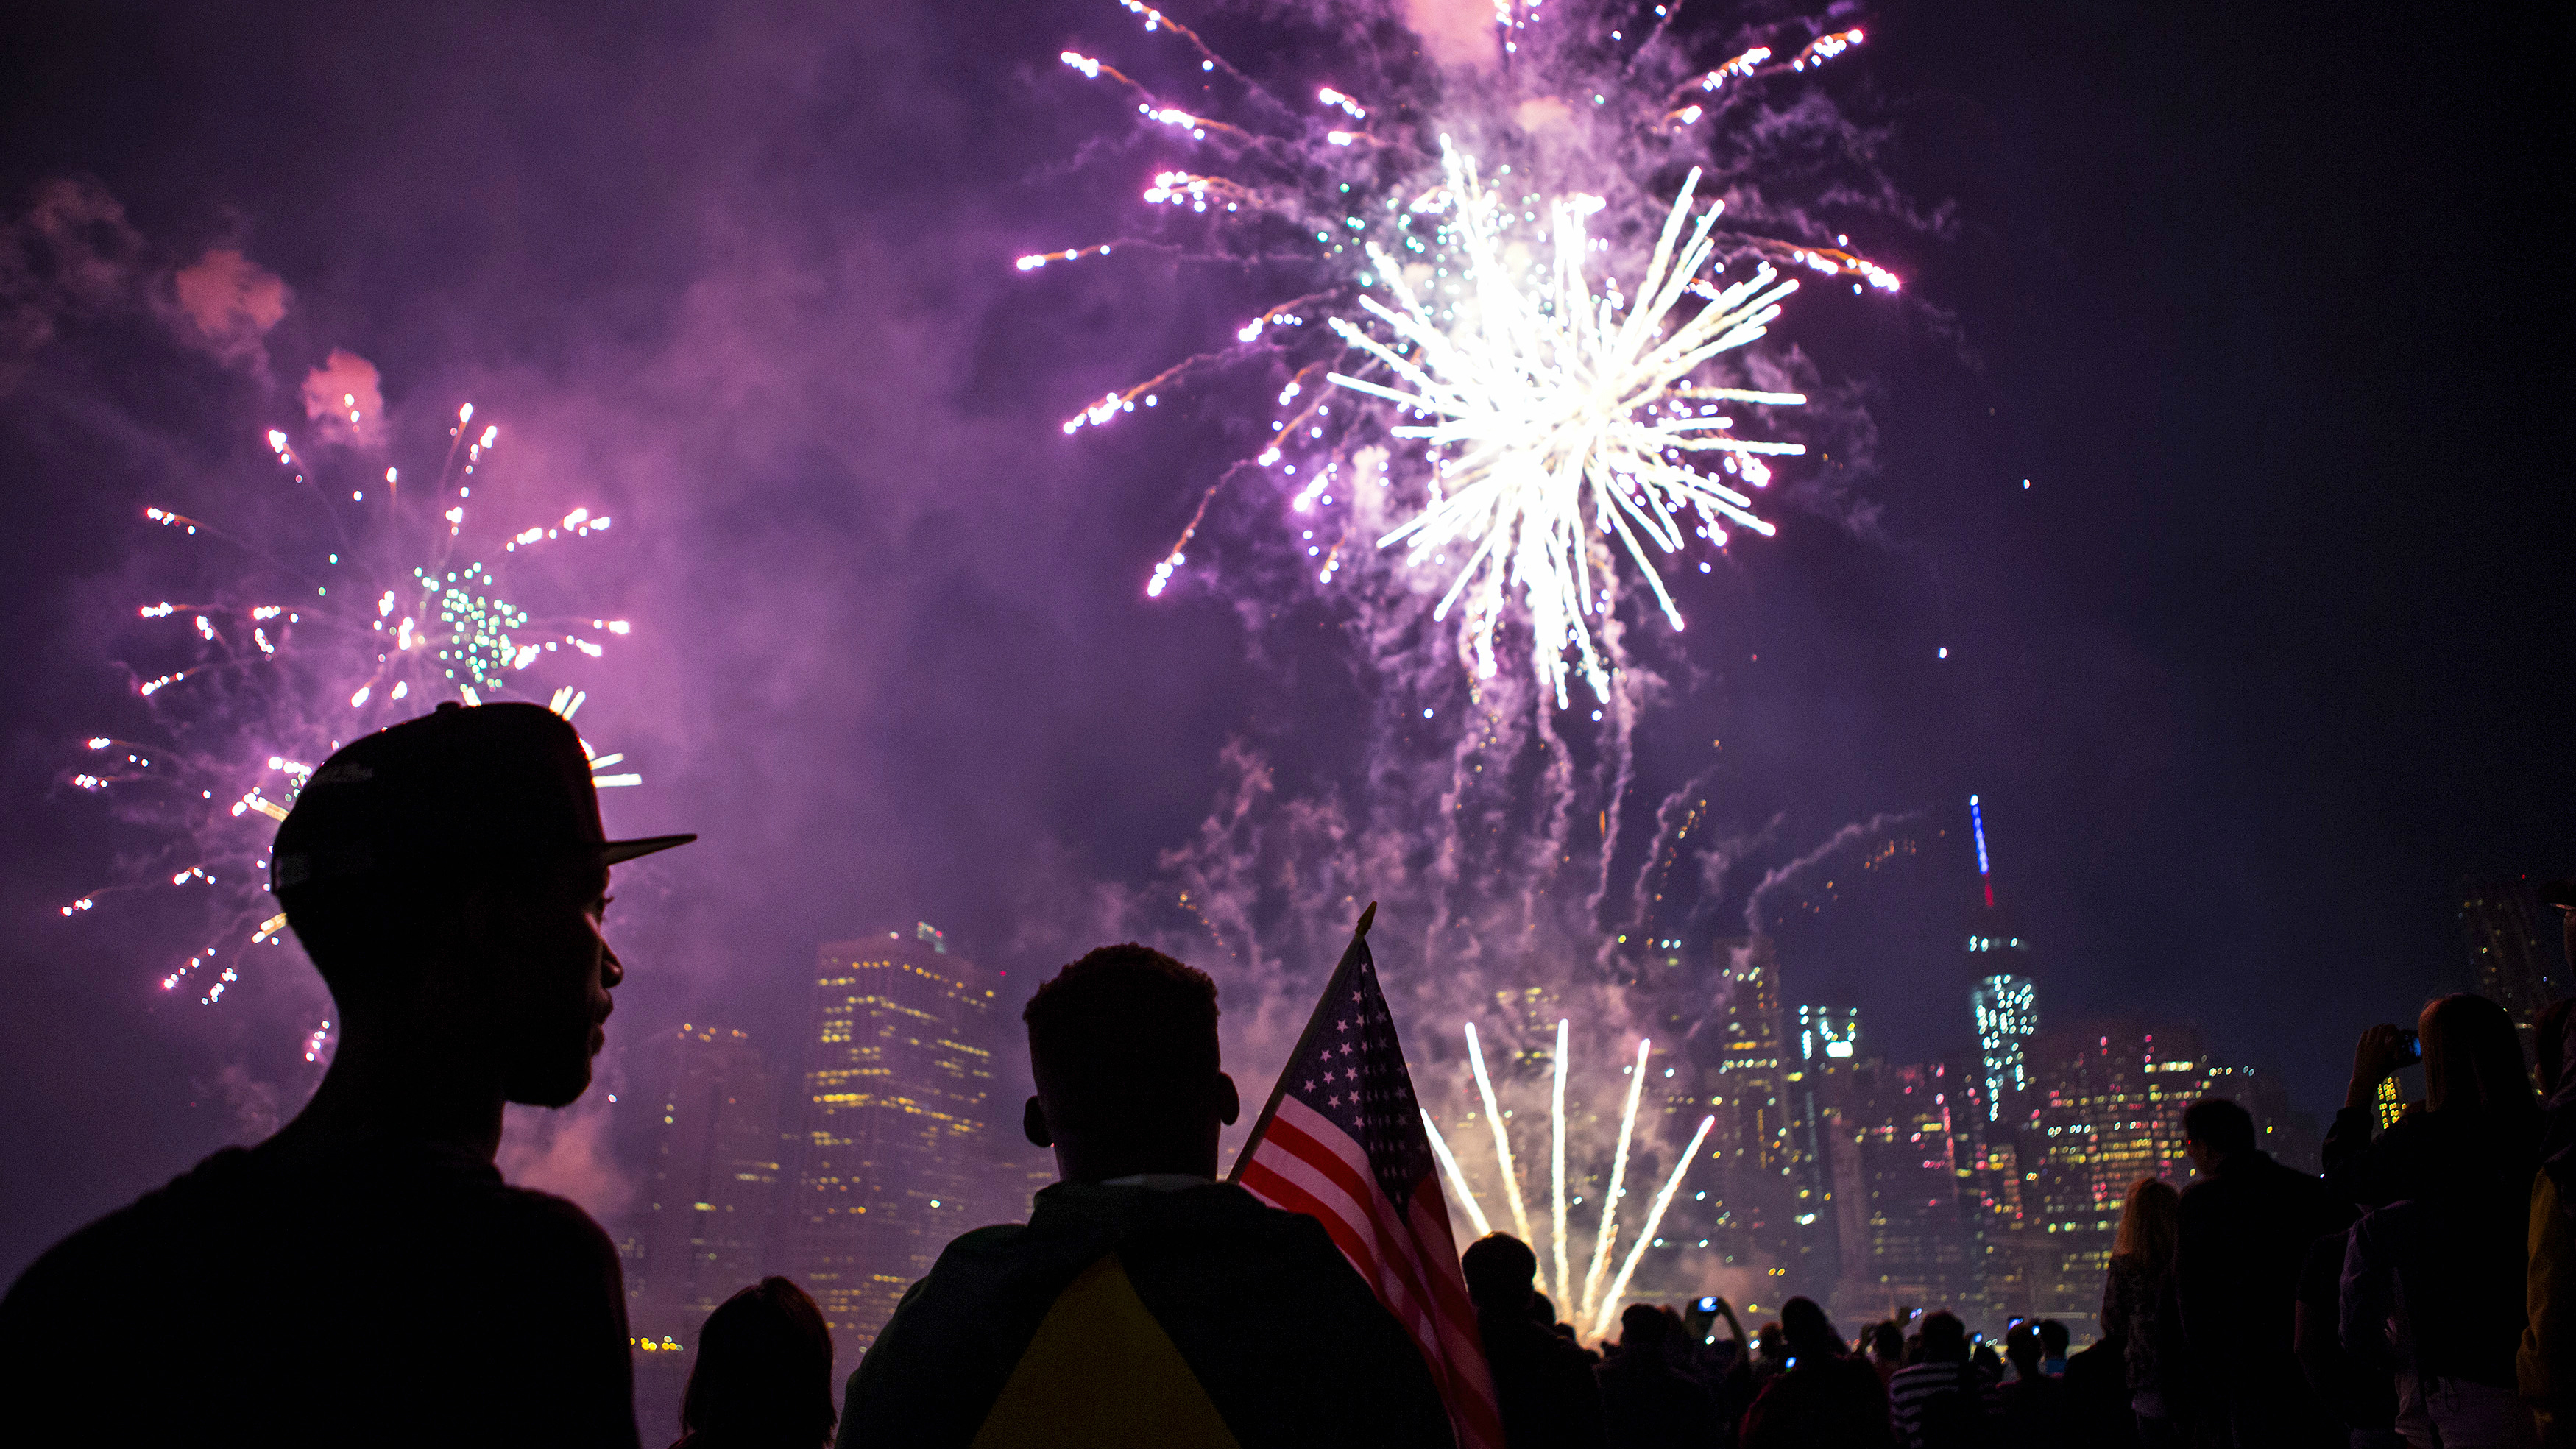 The skyline of lower Manhattan is seen as spectators watch Macy's Fourth of July fireworks explode over the East River in New York July 4, 2014. Hotdog eating champs, backyard picnickers and small-town parade lovers pressed on with July Fourth celebrations, some with less sizzle after wet weather on the U.S. East Coast postponed fireworks shows. REUTERS/Eric Thayer (UNITED STATES - Tags: CITYSCAPE ANNIVERSARY SOCIETY)